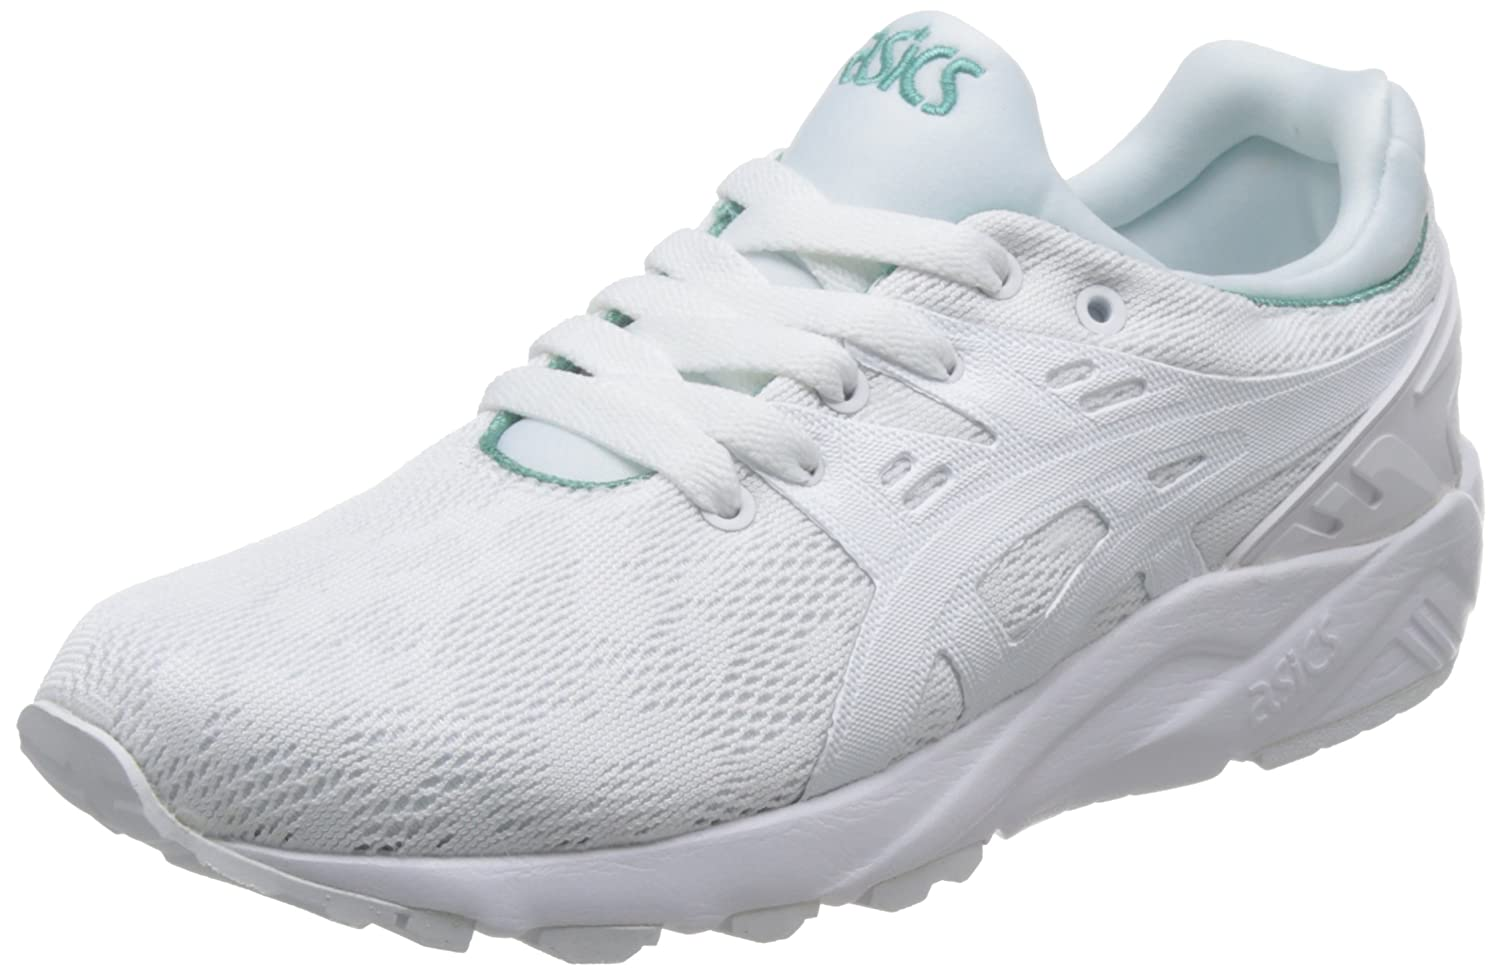 ASICS Damen Gel-Kayano Trainer Evo H7q6n-0101 Turnschuhe